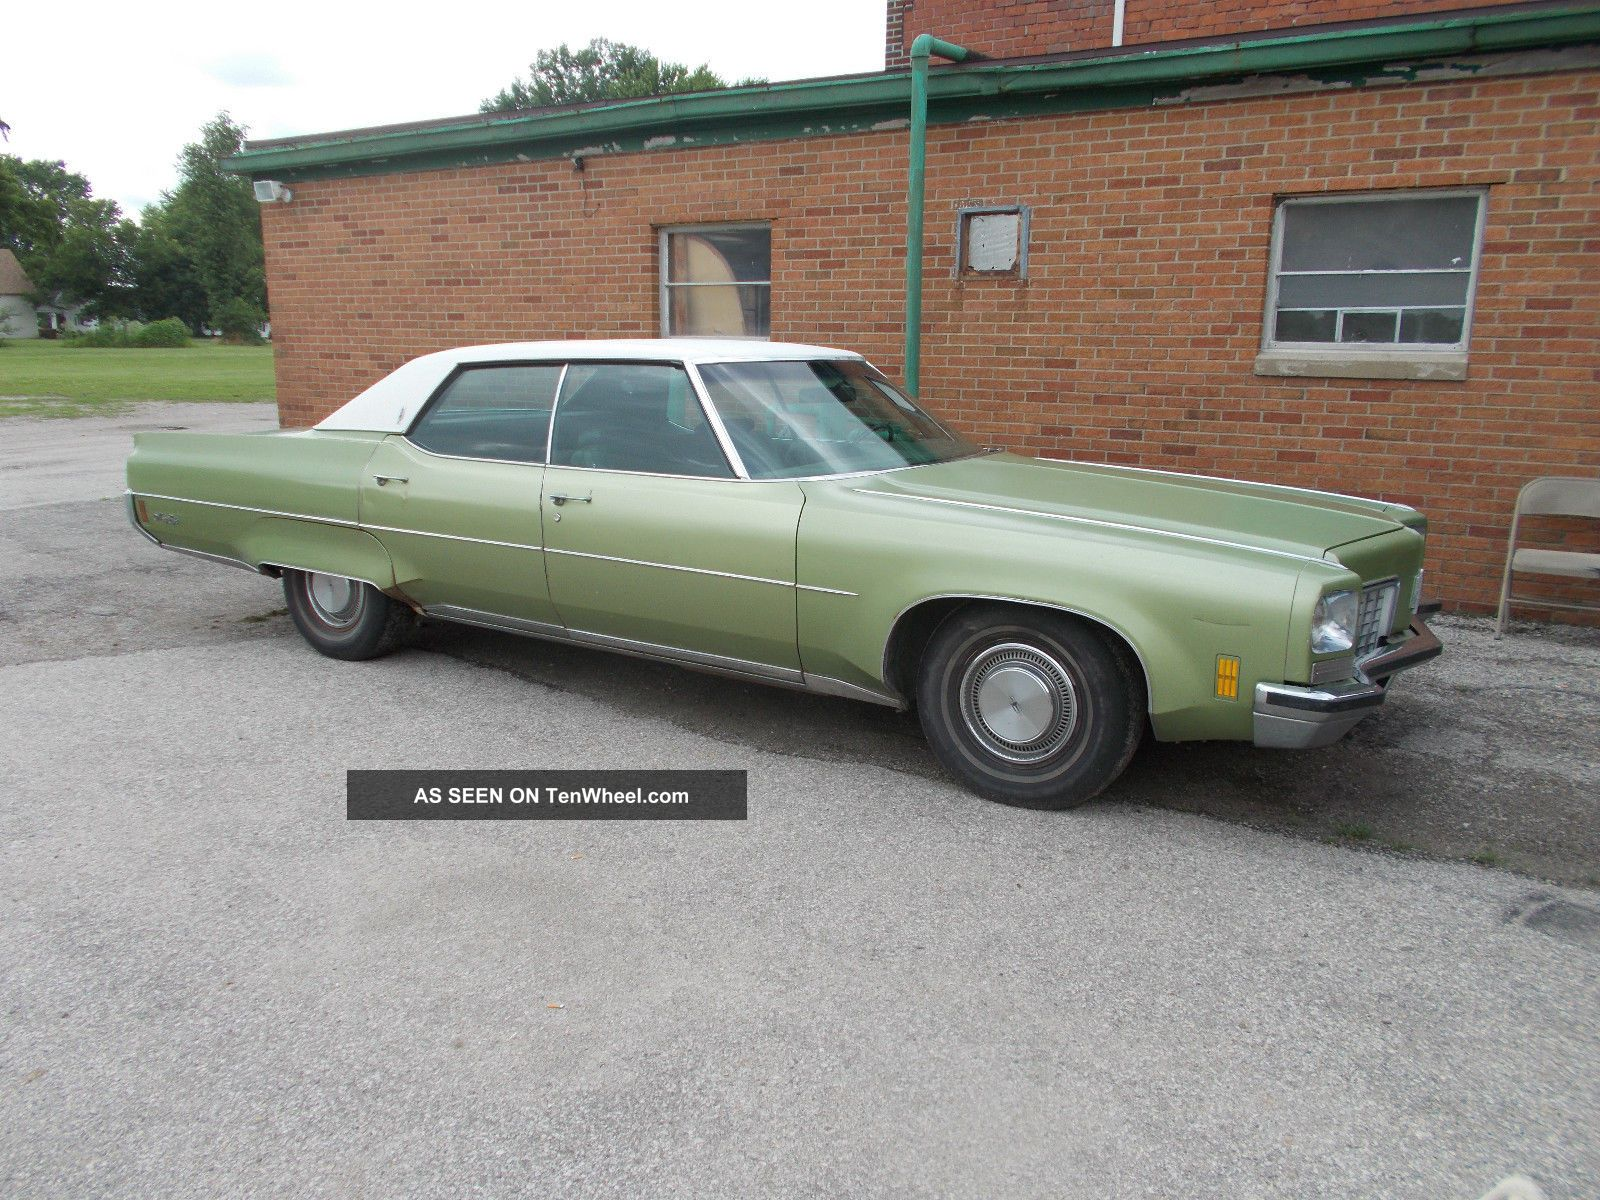 Lower Mileage 1972 Oldsmobile Ninety Eight 4 Door Luxury Sedan Ninety-Eight photo